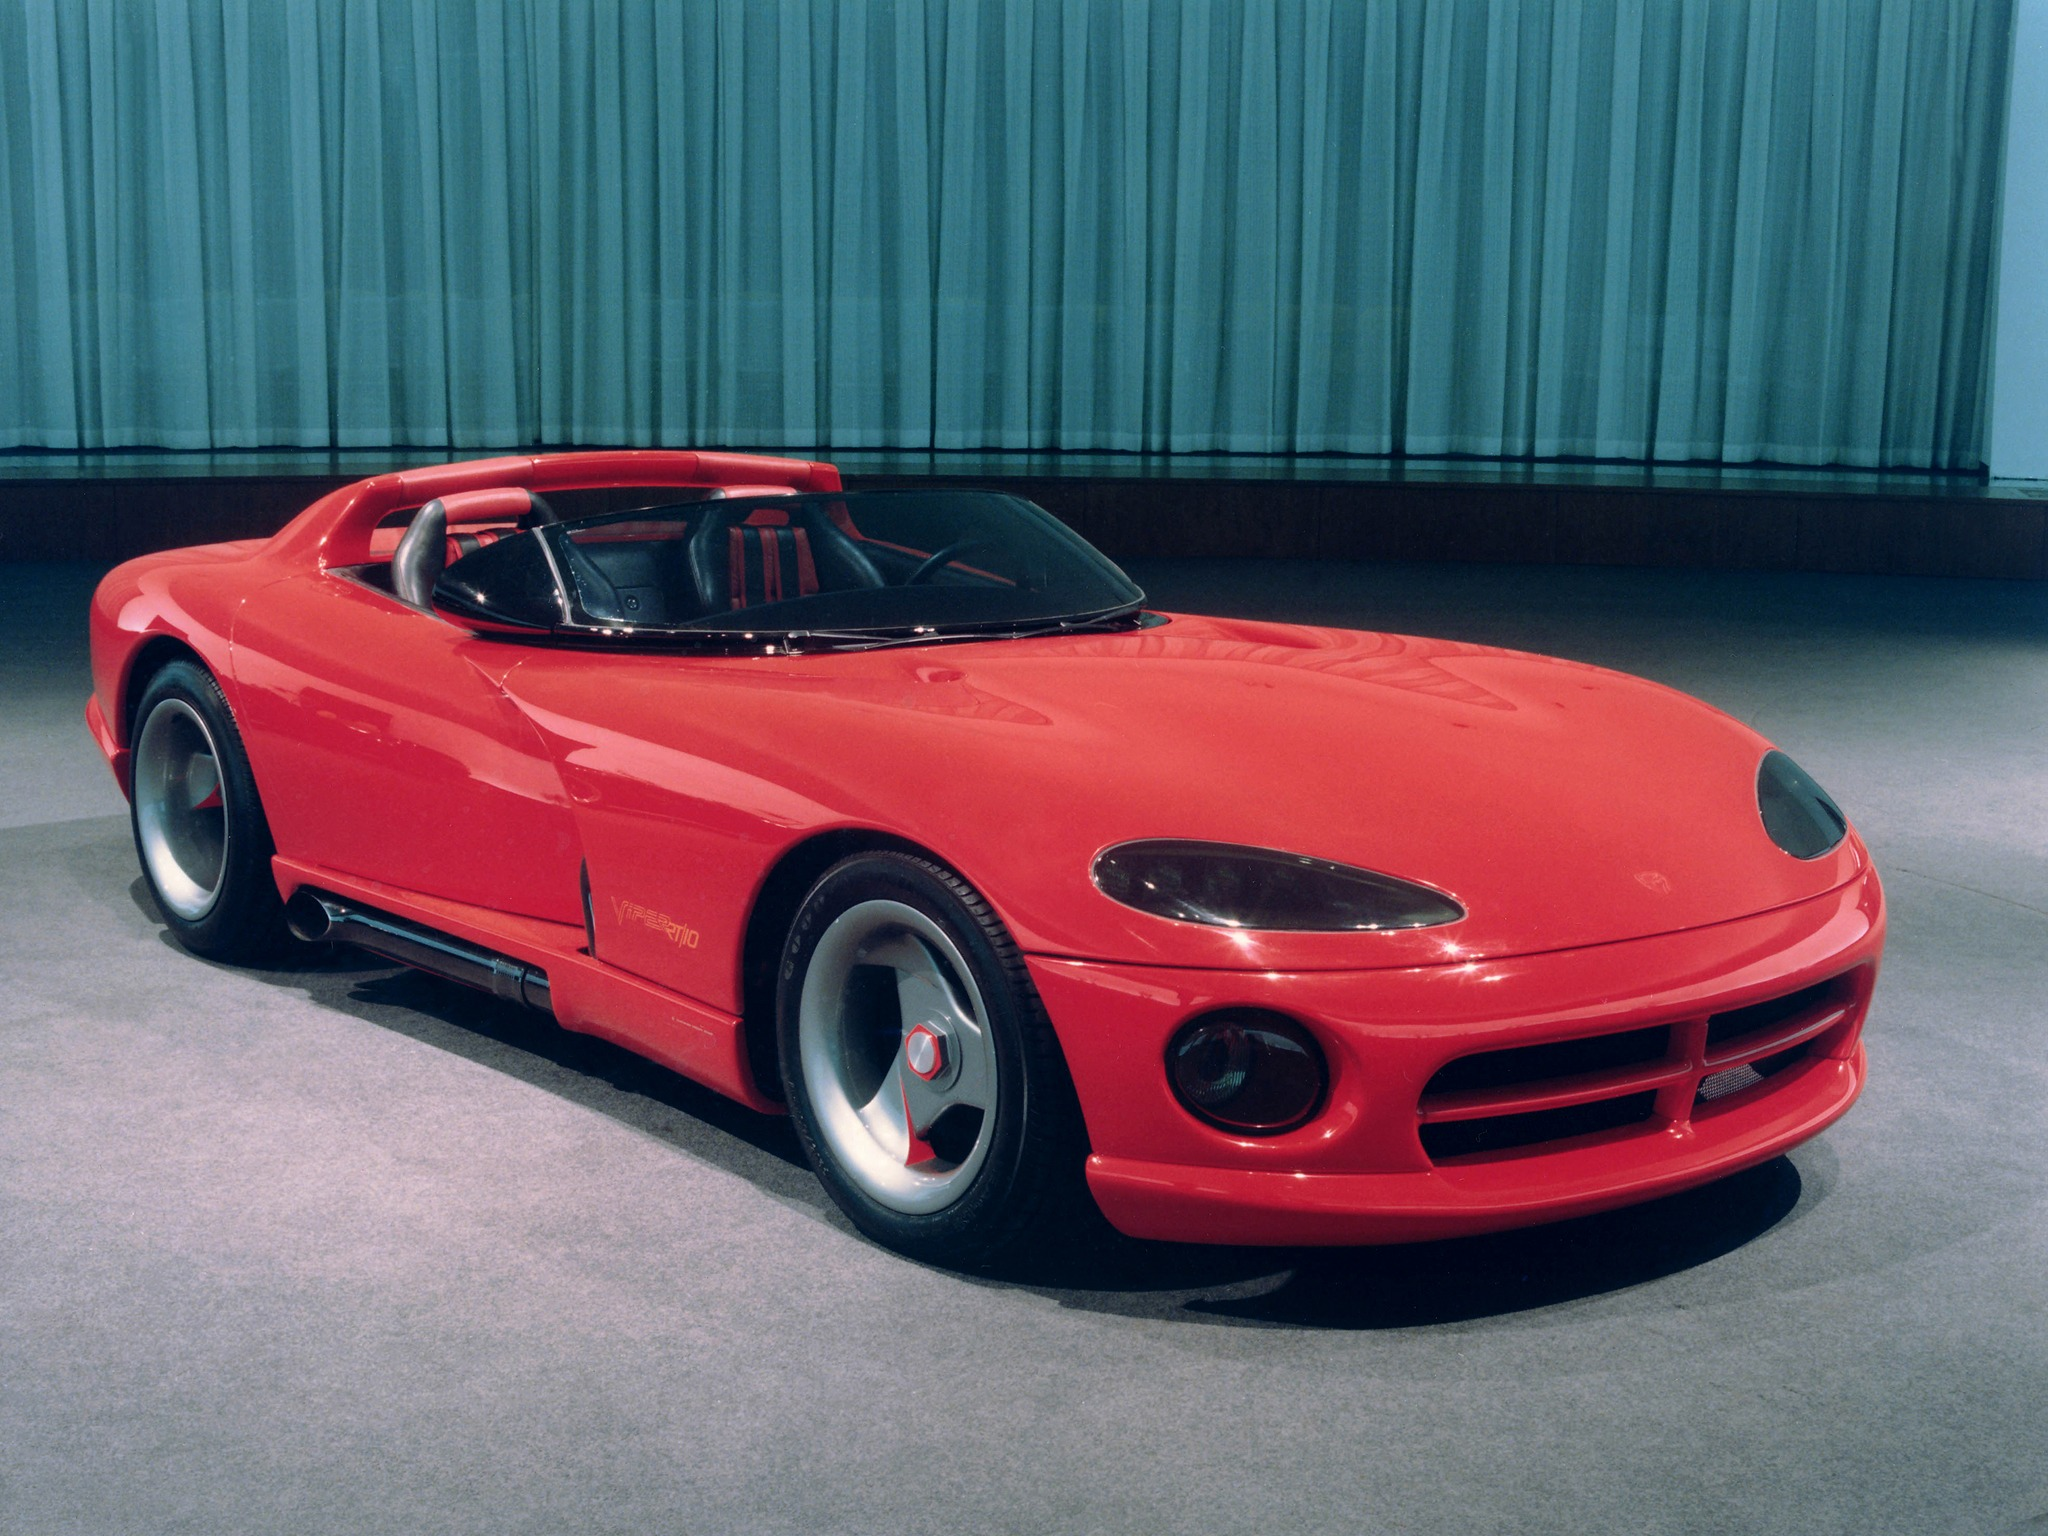 Image 39 Of 50 Dodge Viper Rt10 Concept 1989 Old Cars 1951 Buick Xp 300 Car